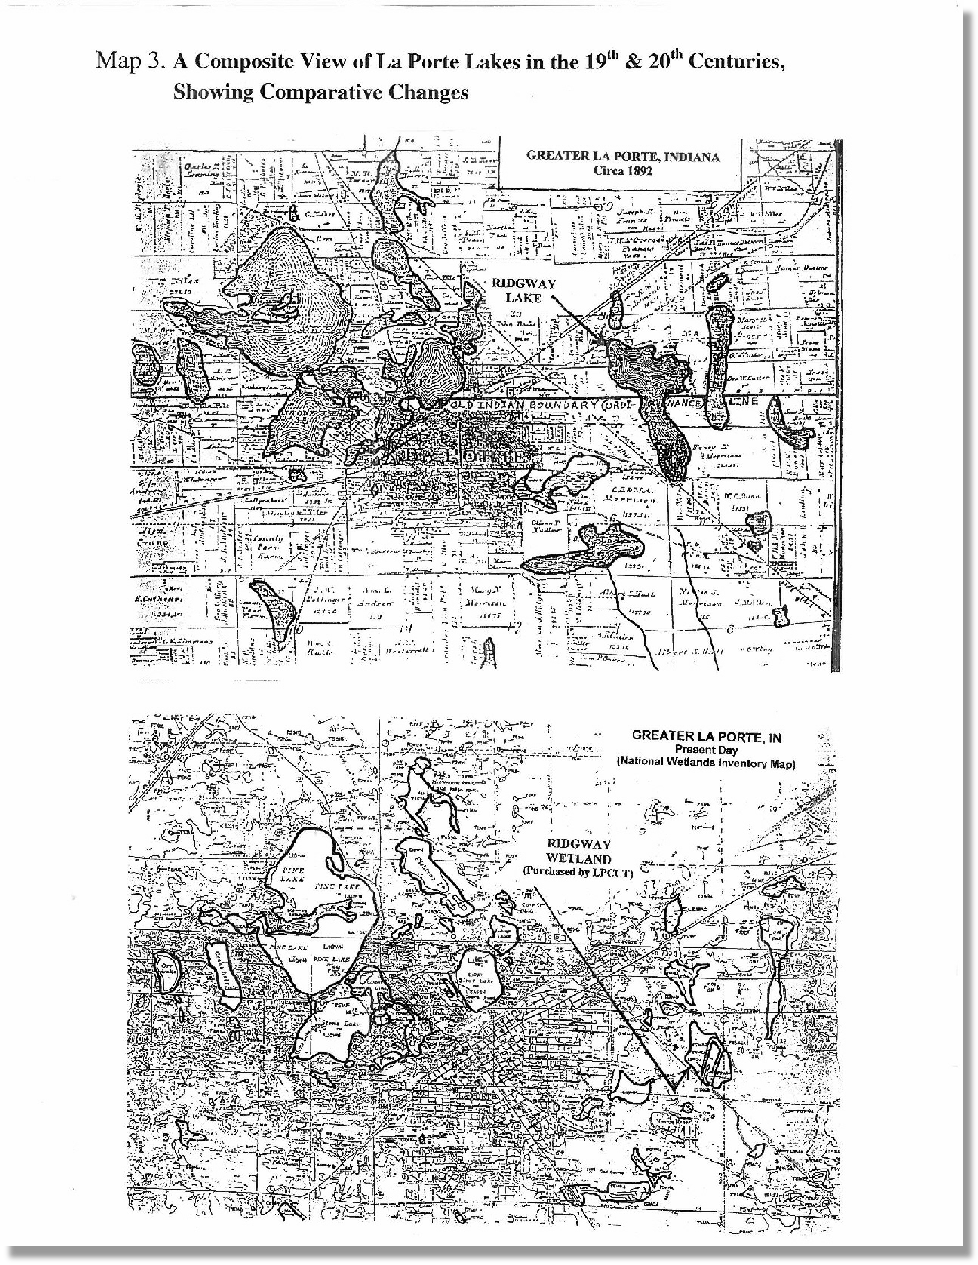 Comparitive Changes to La Porte Lakes - 19th to 20th Centuries